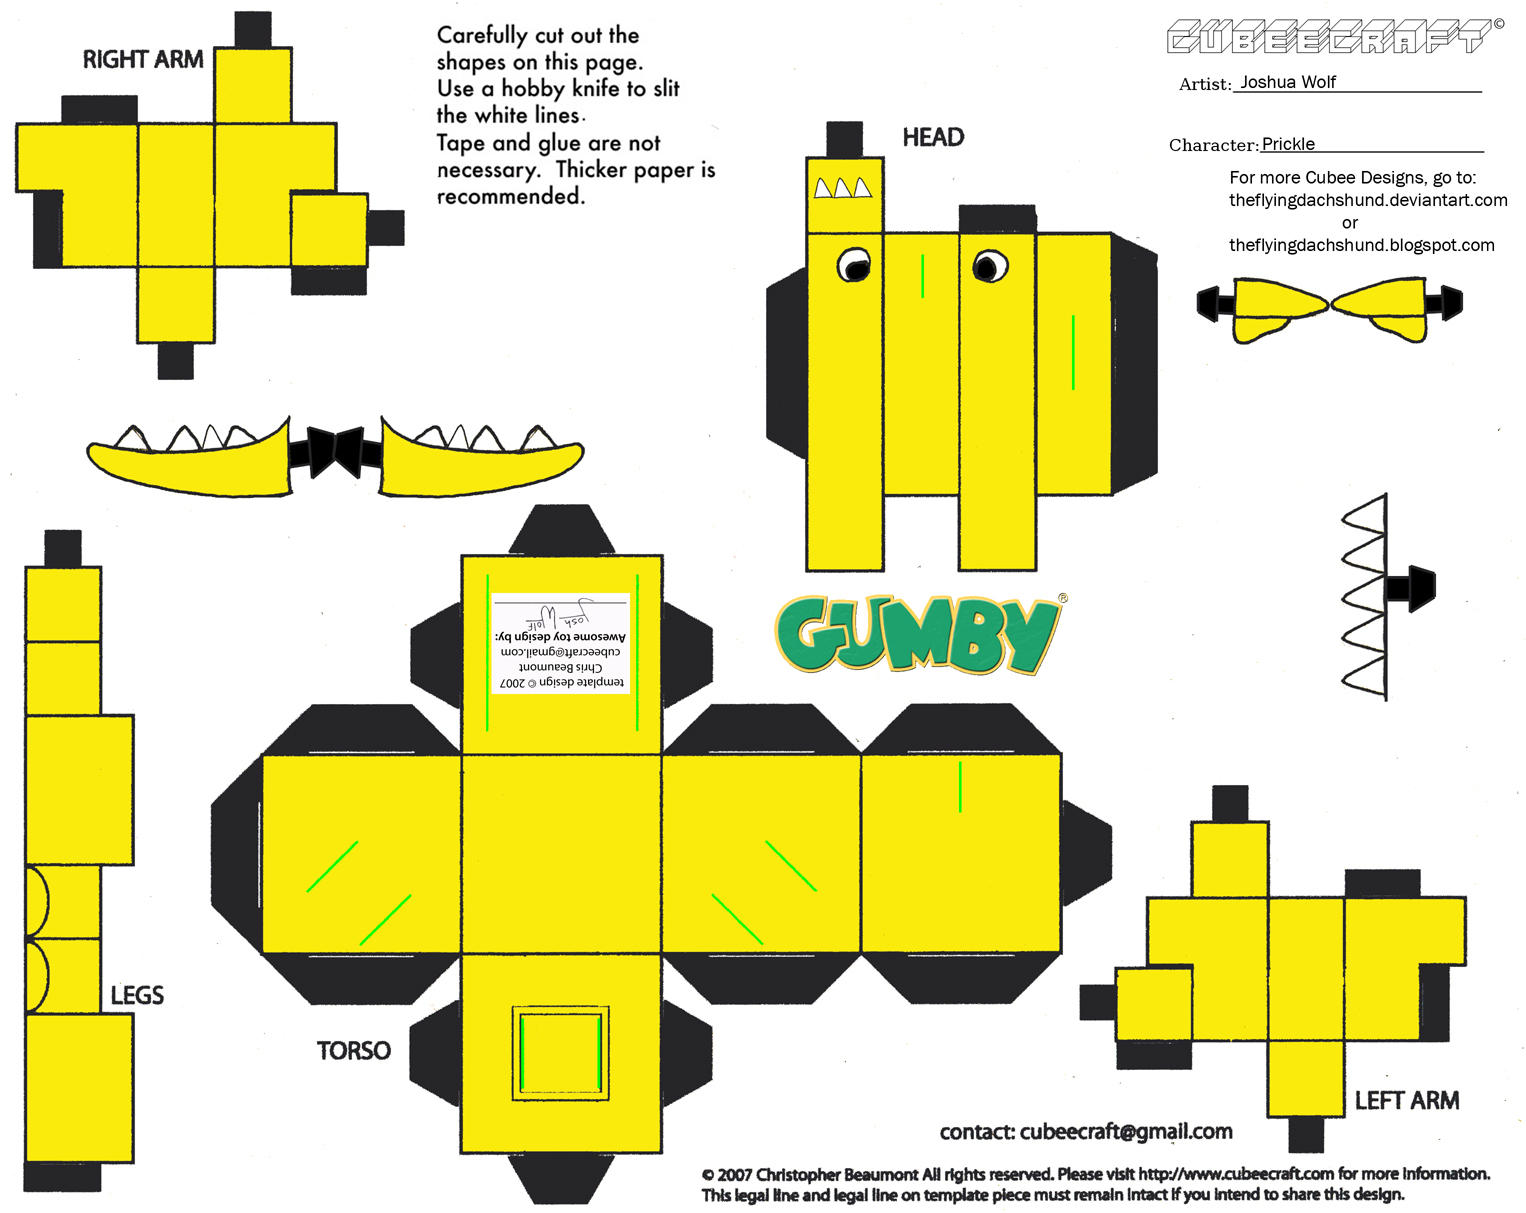 Gumby: Prickle Cubee by TheFlyingDachshund on DeviantArt